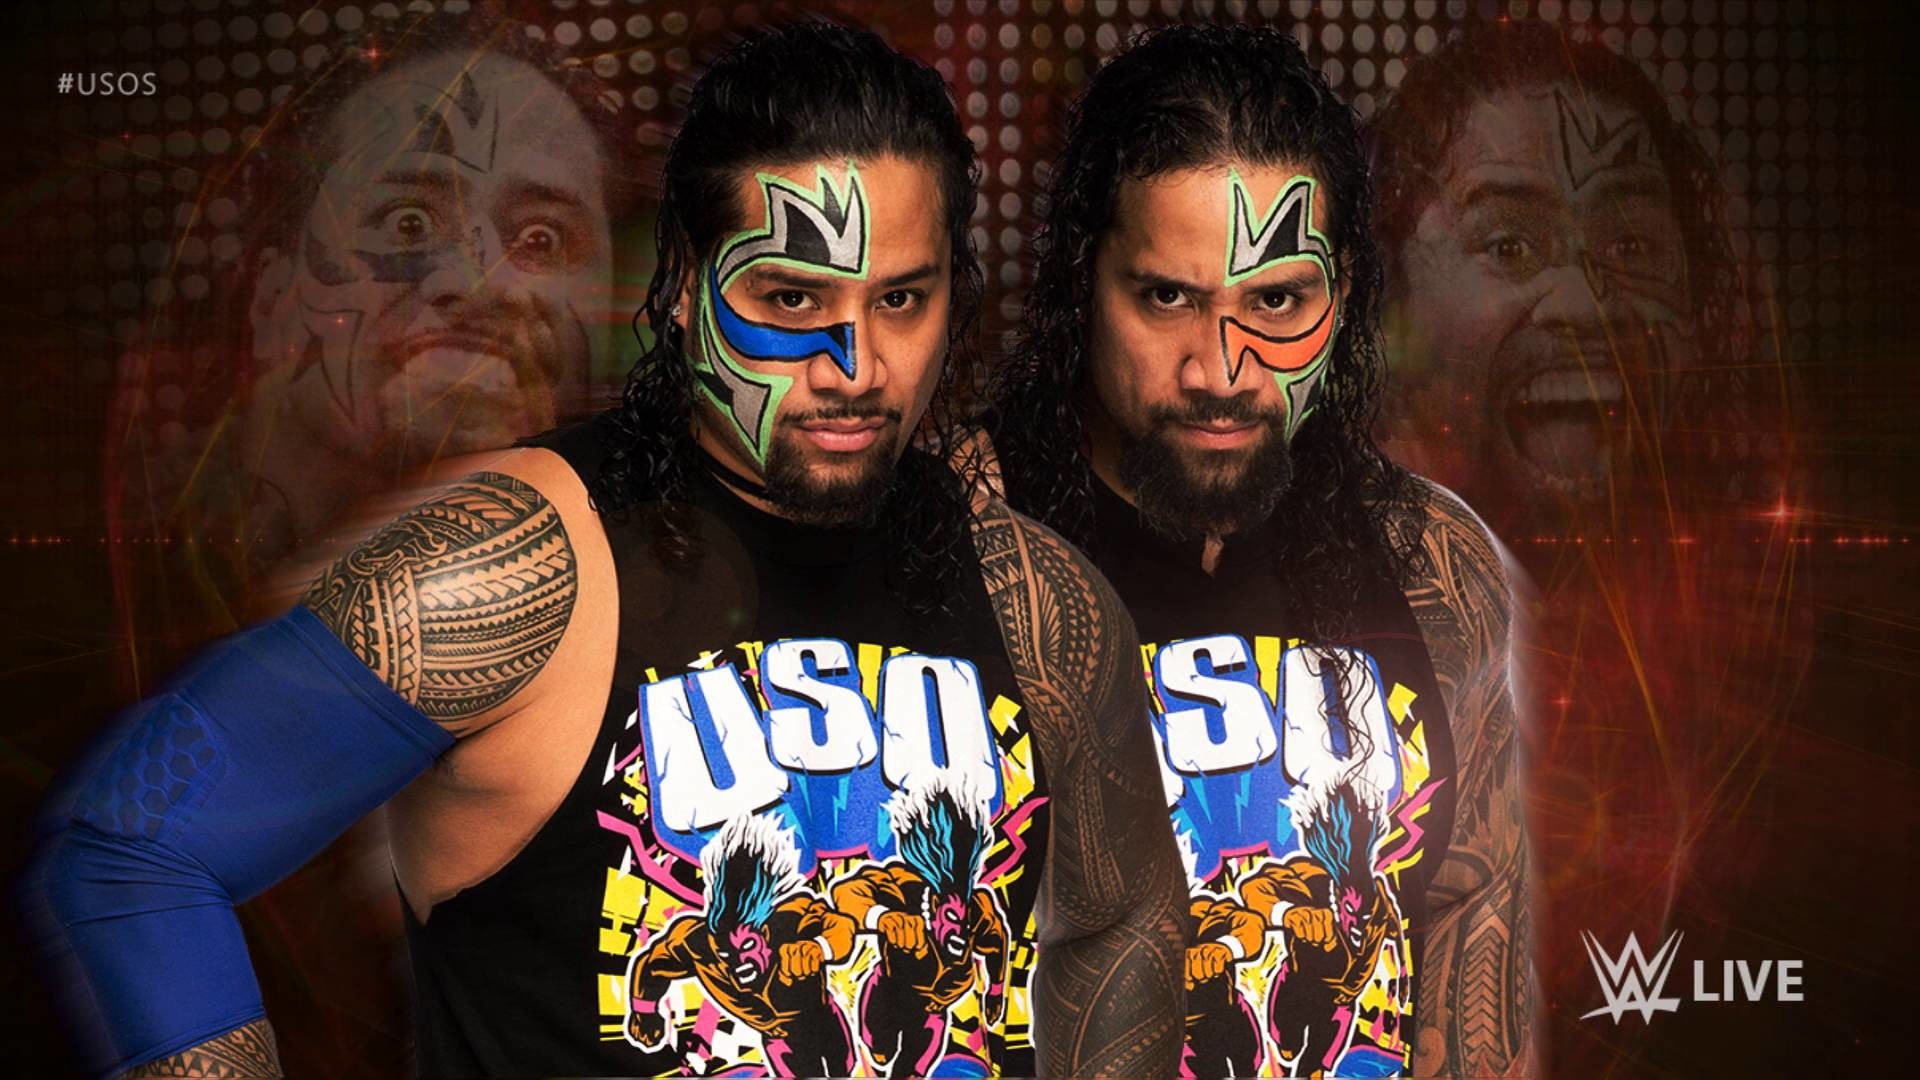 The usos wallpapers 87 background pictures - The usos theme song so close now ...